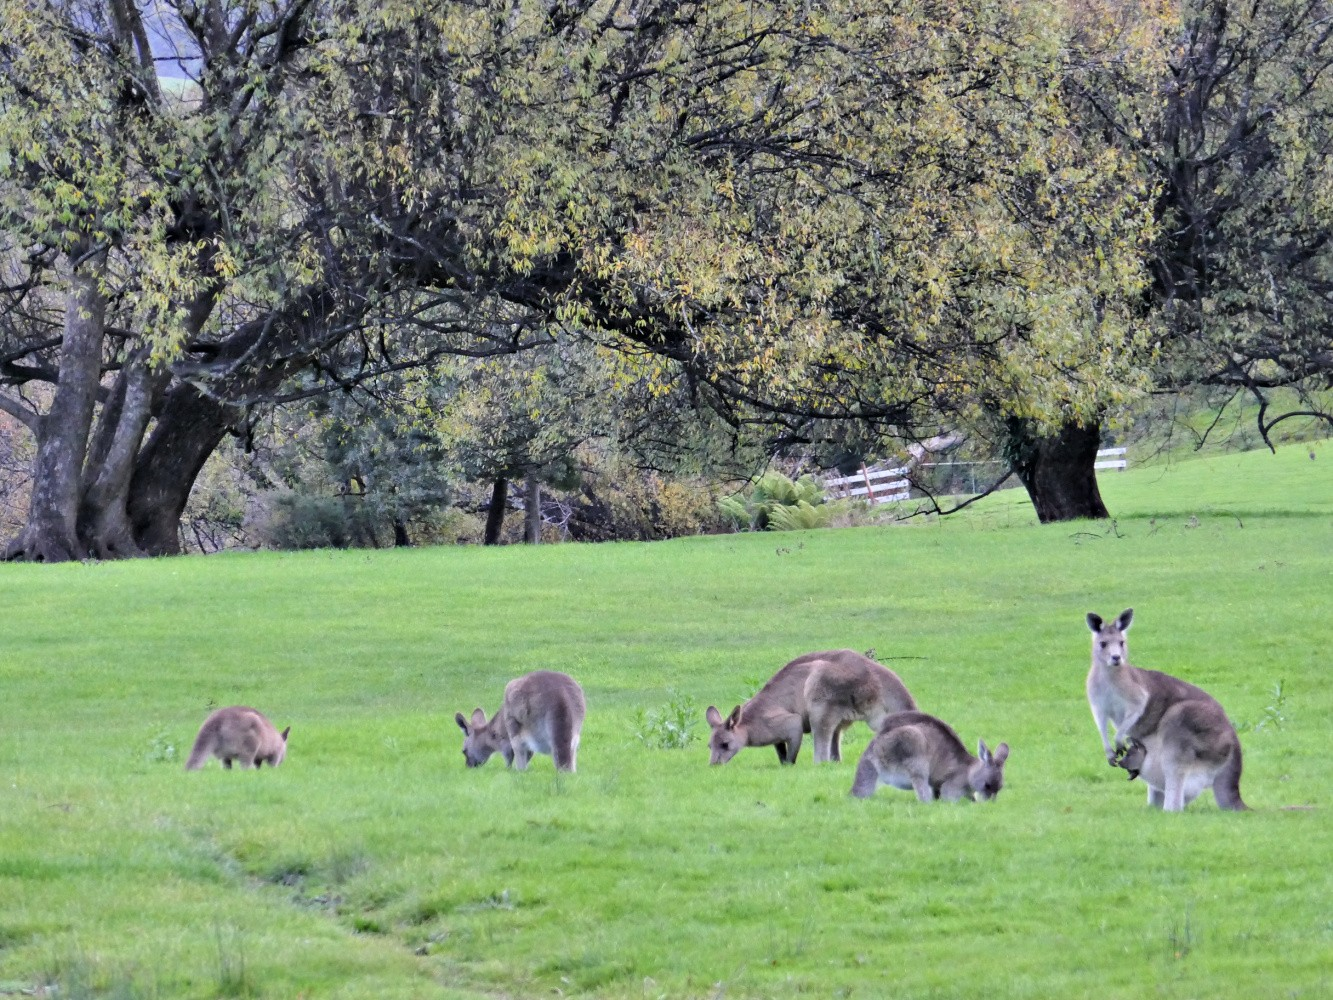 A mob of kangaroos in Australia grazing on grass